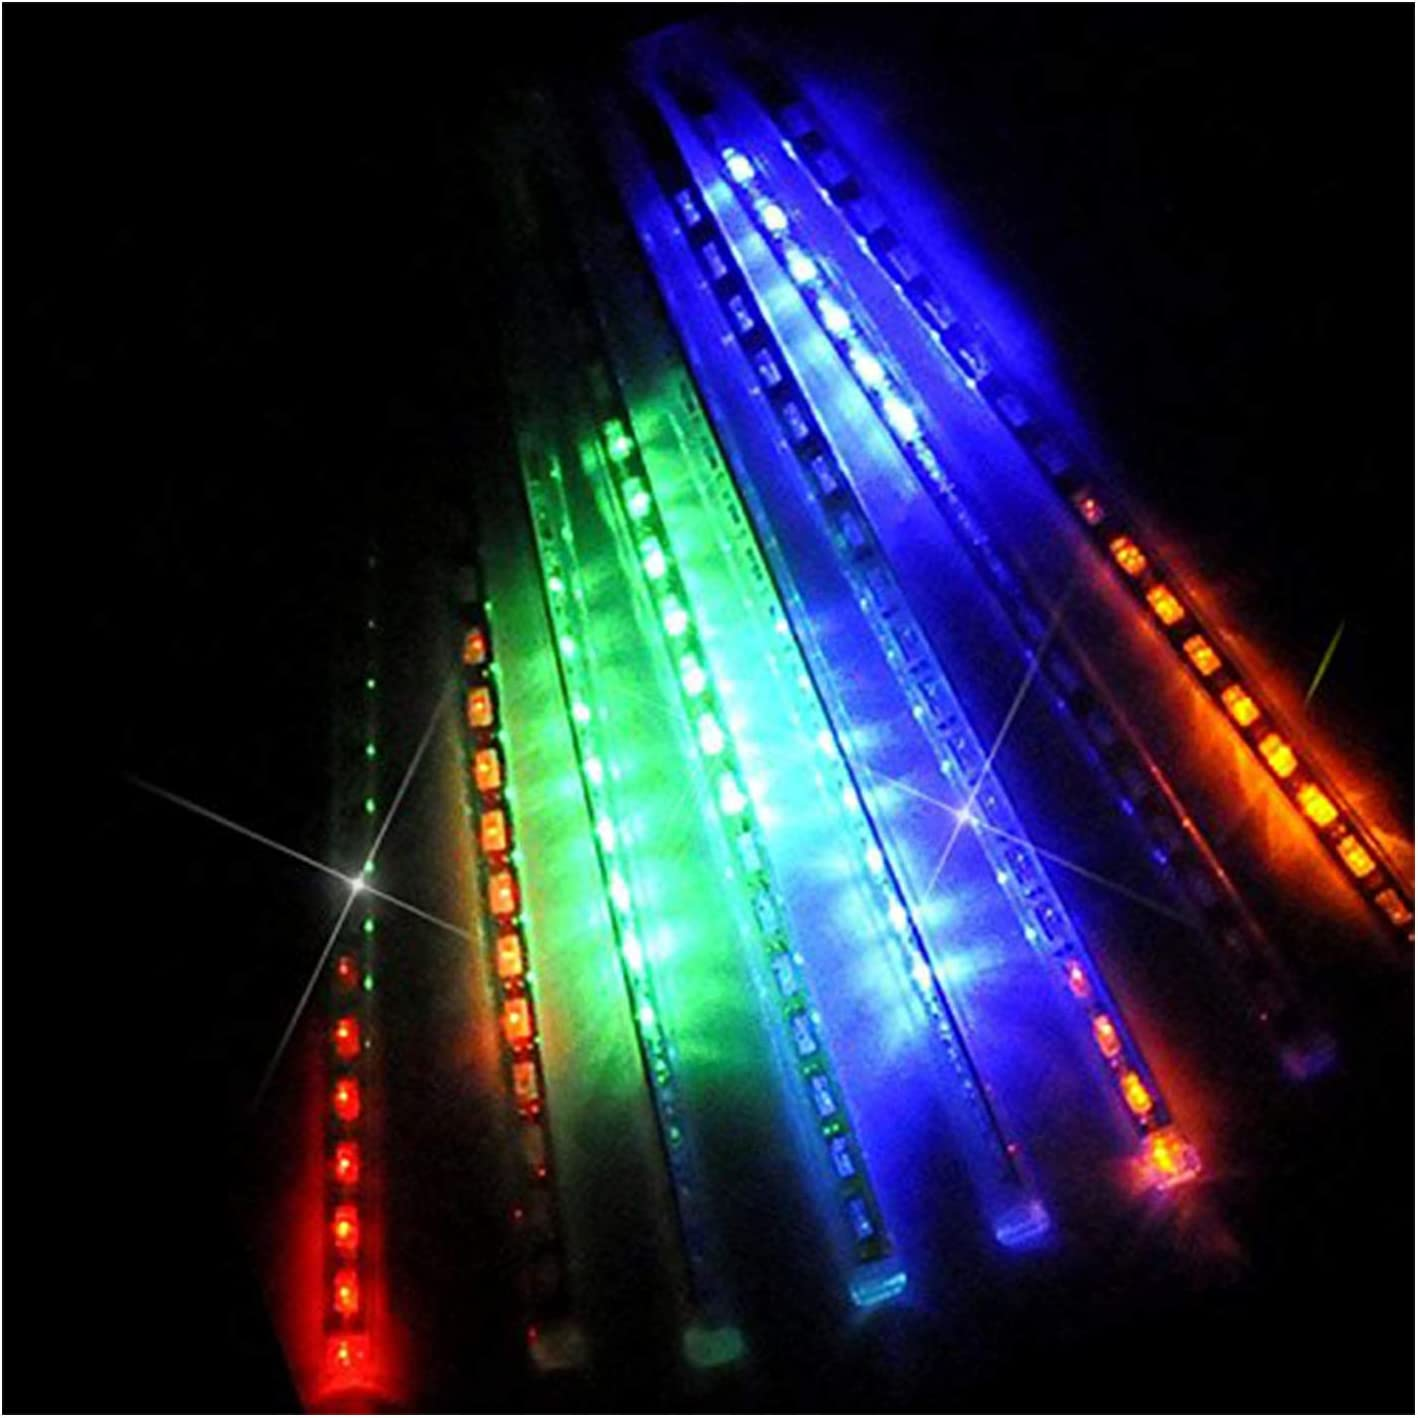 OMGAI LED Meteor Shower Rain Lights - Waterproof Drop Icicle Snow Falling Raindrop 30cm 8 Tubes Cascading Lights for Wedding Xmas Home Décor, Colourful